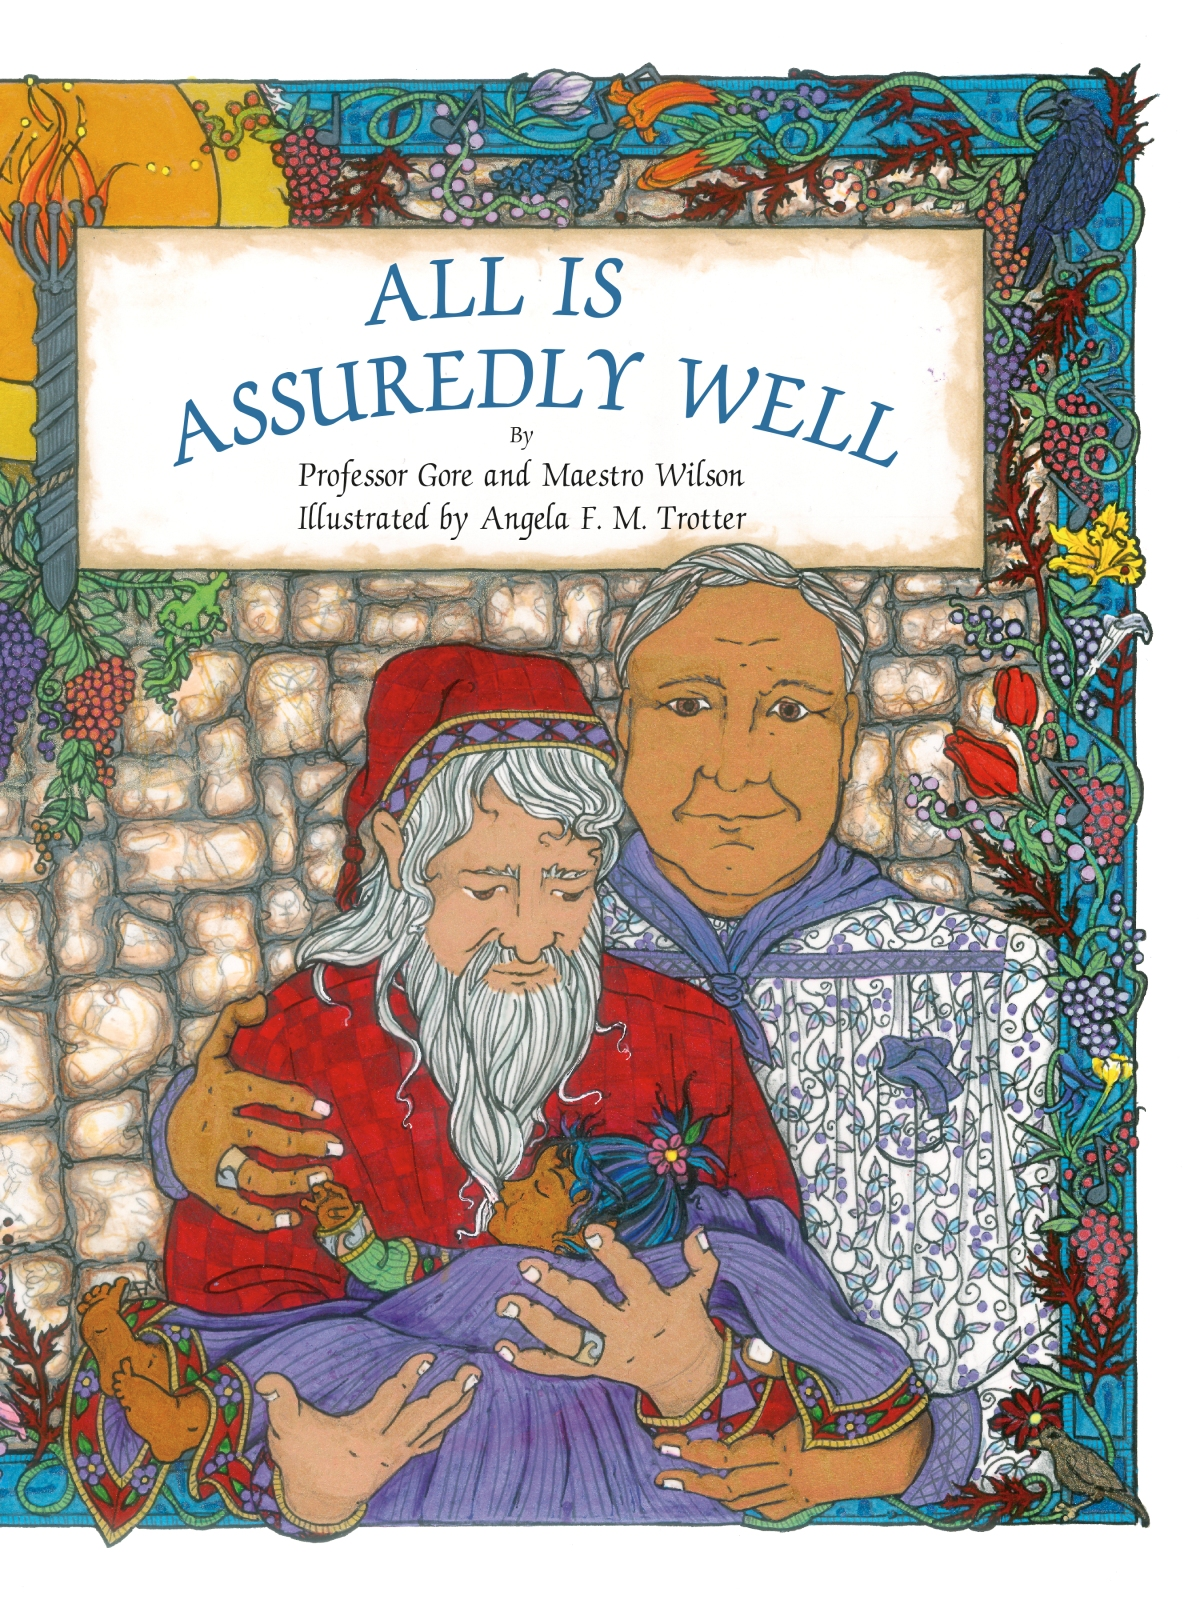 All Is Assuredly Well by Professor Gore and Maestro Wilson (Illustrated by Angela F.M. Trotter) Blog Tour, Review and Giveaway